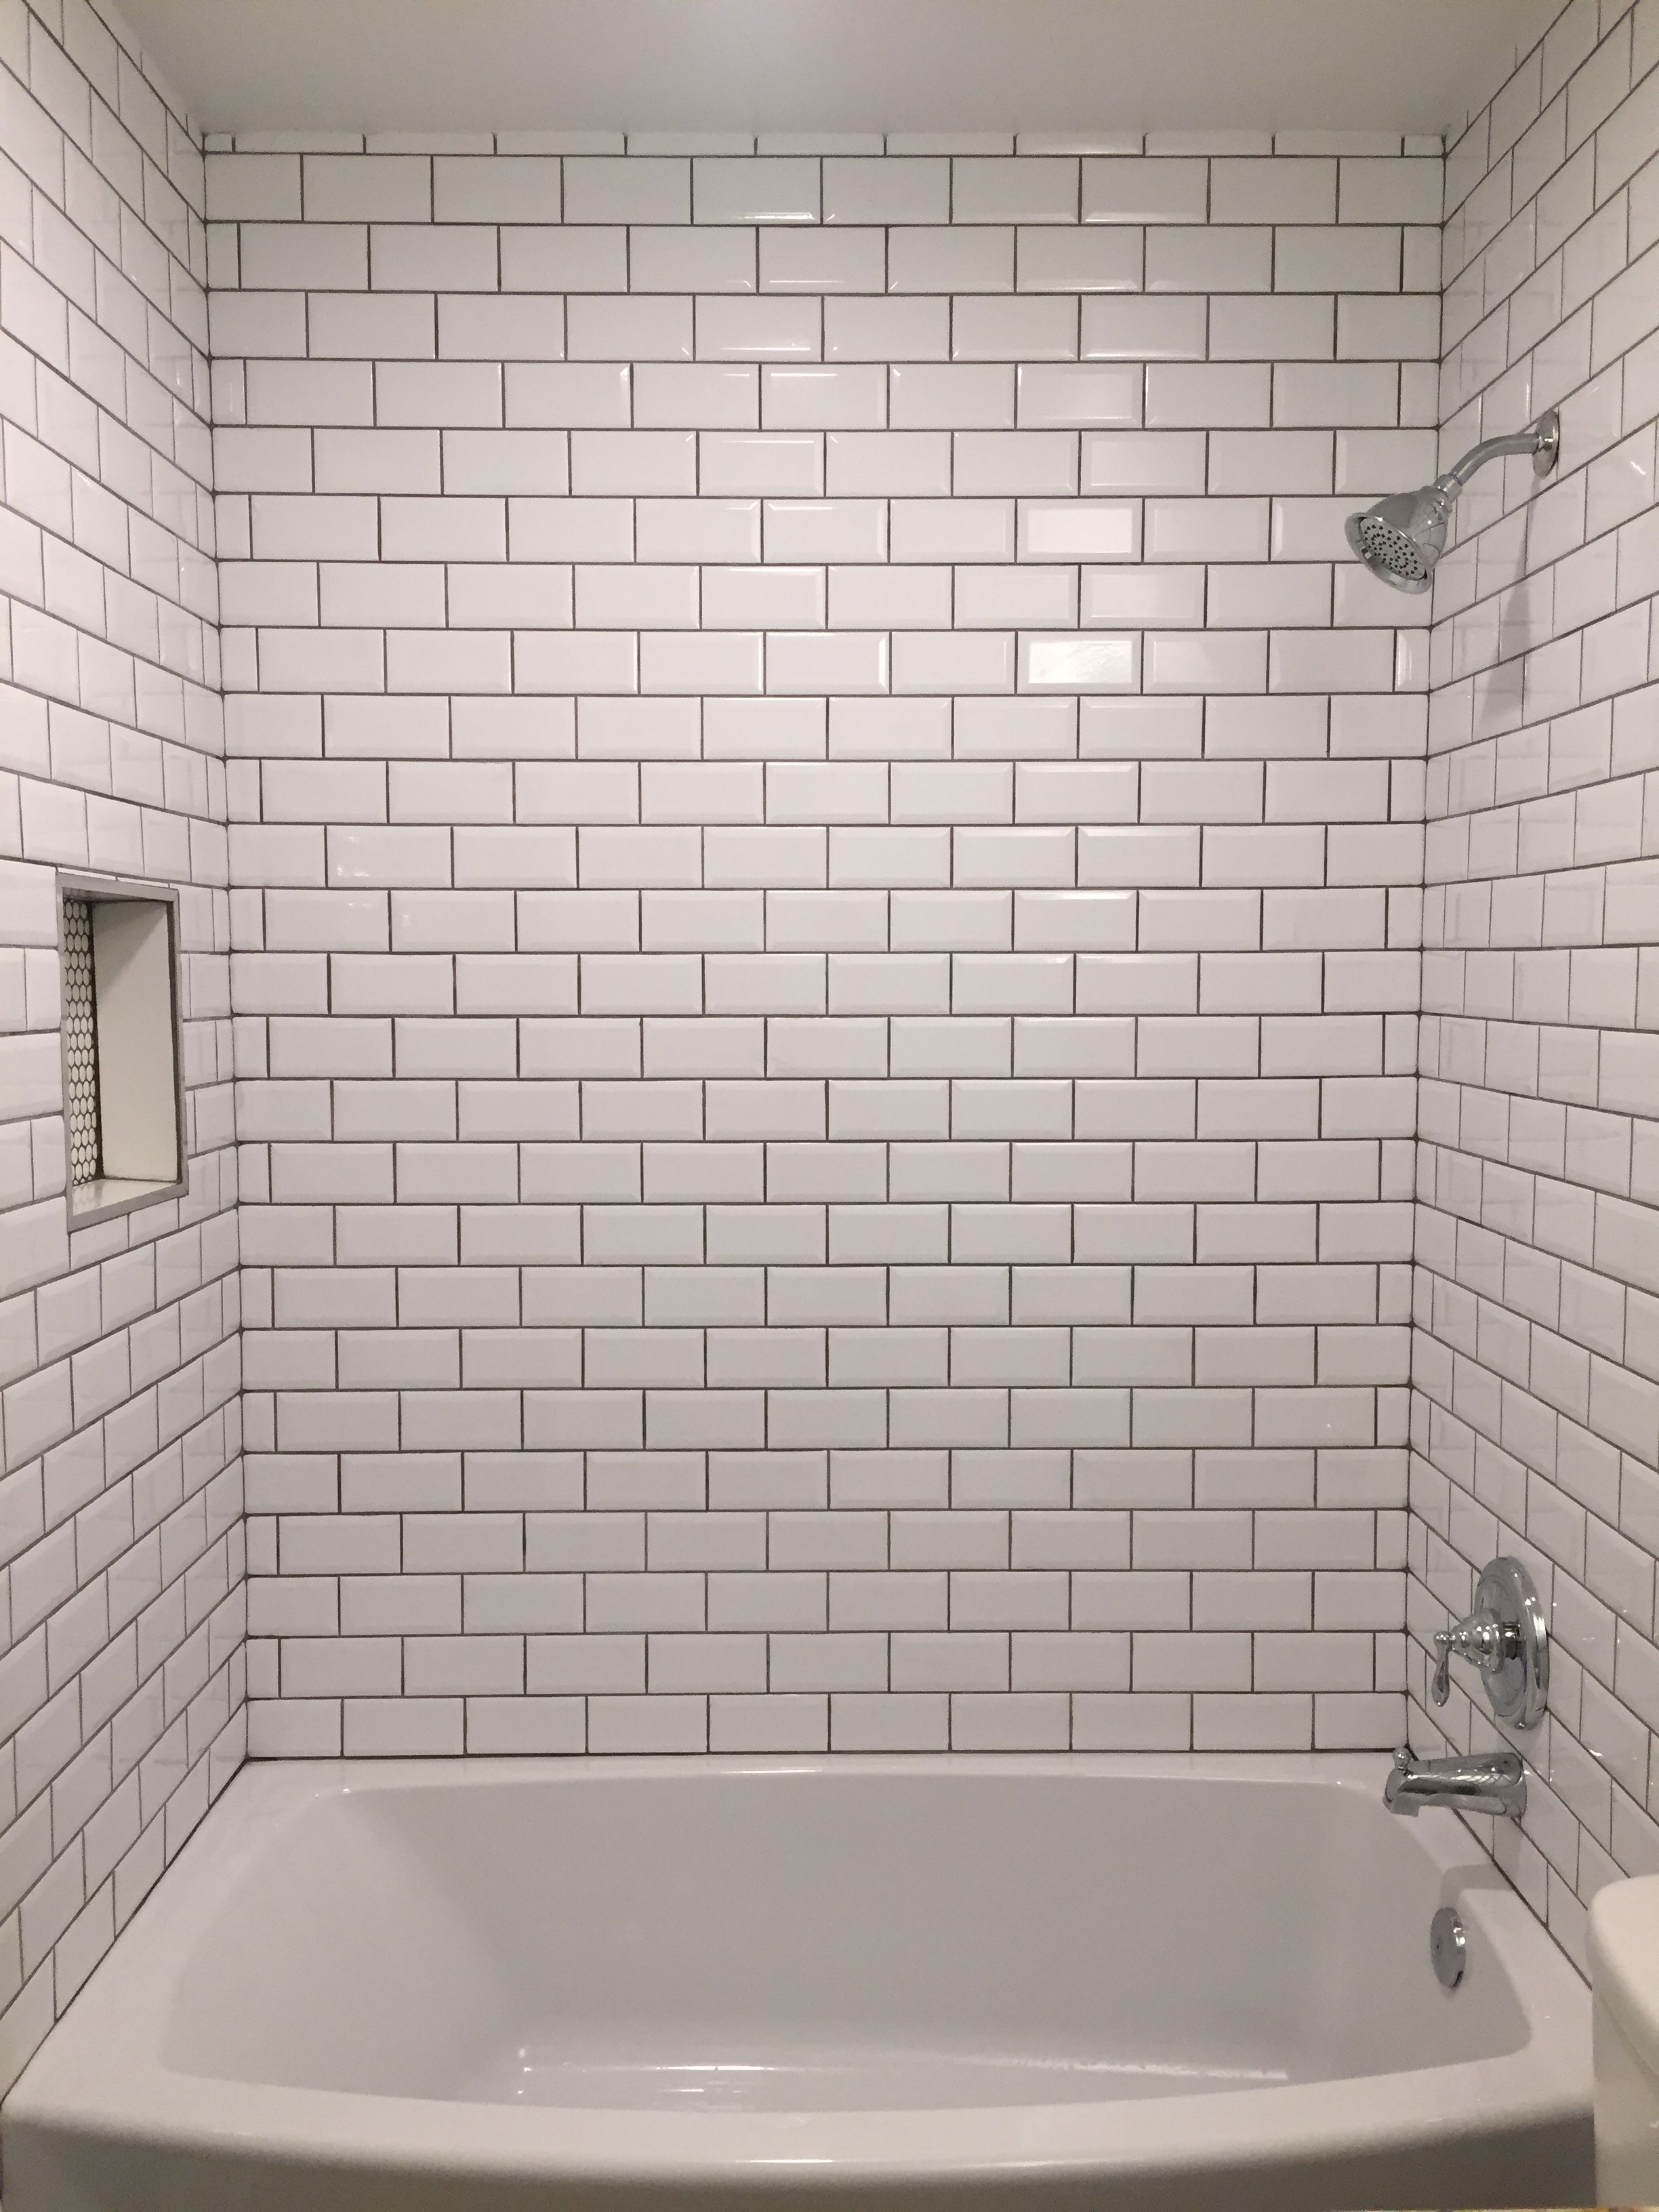 Beveled Bright White Subway Tile With Mapei Grey Grout